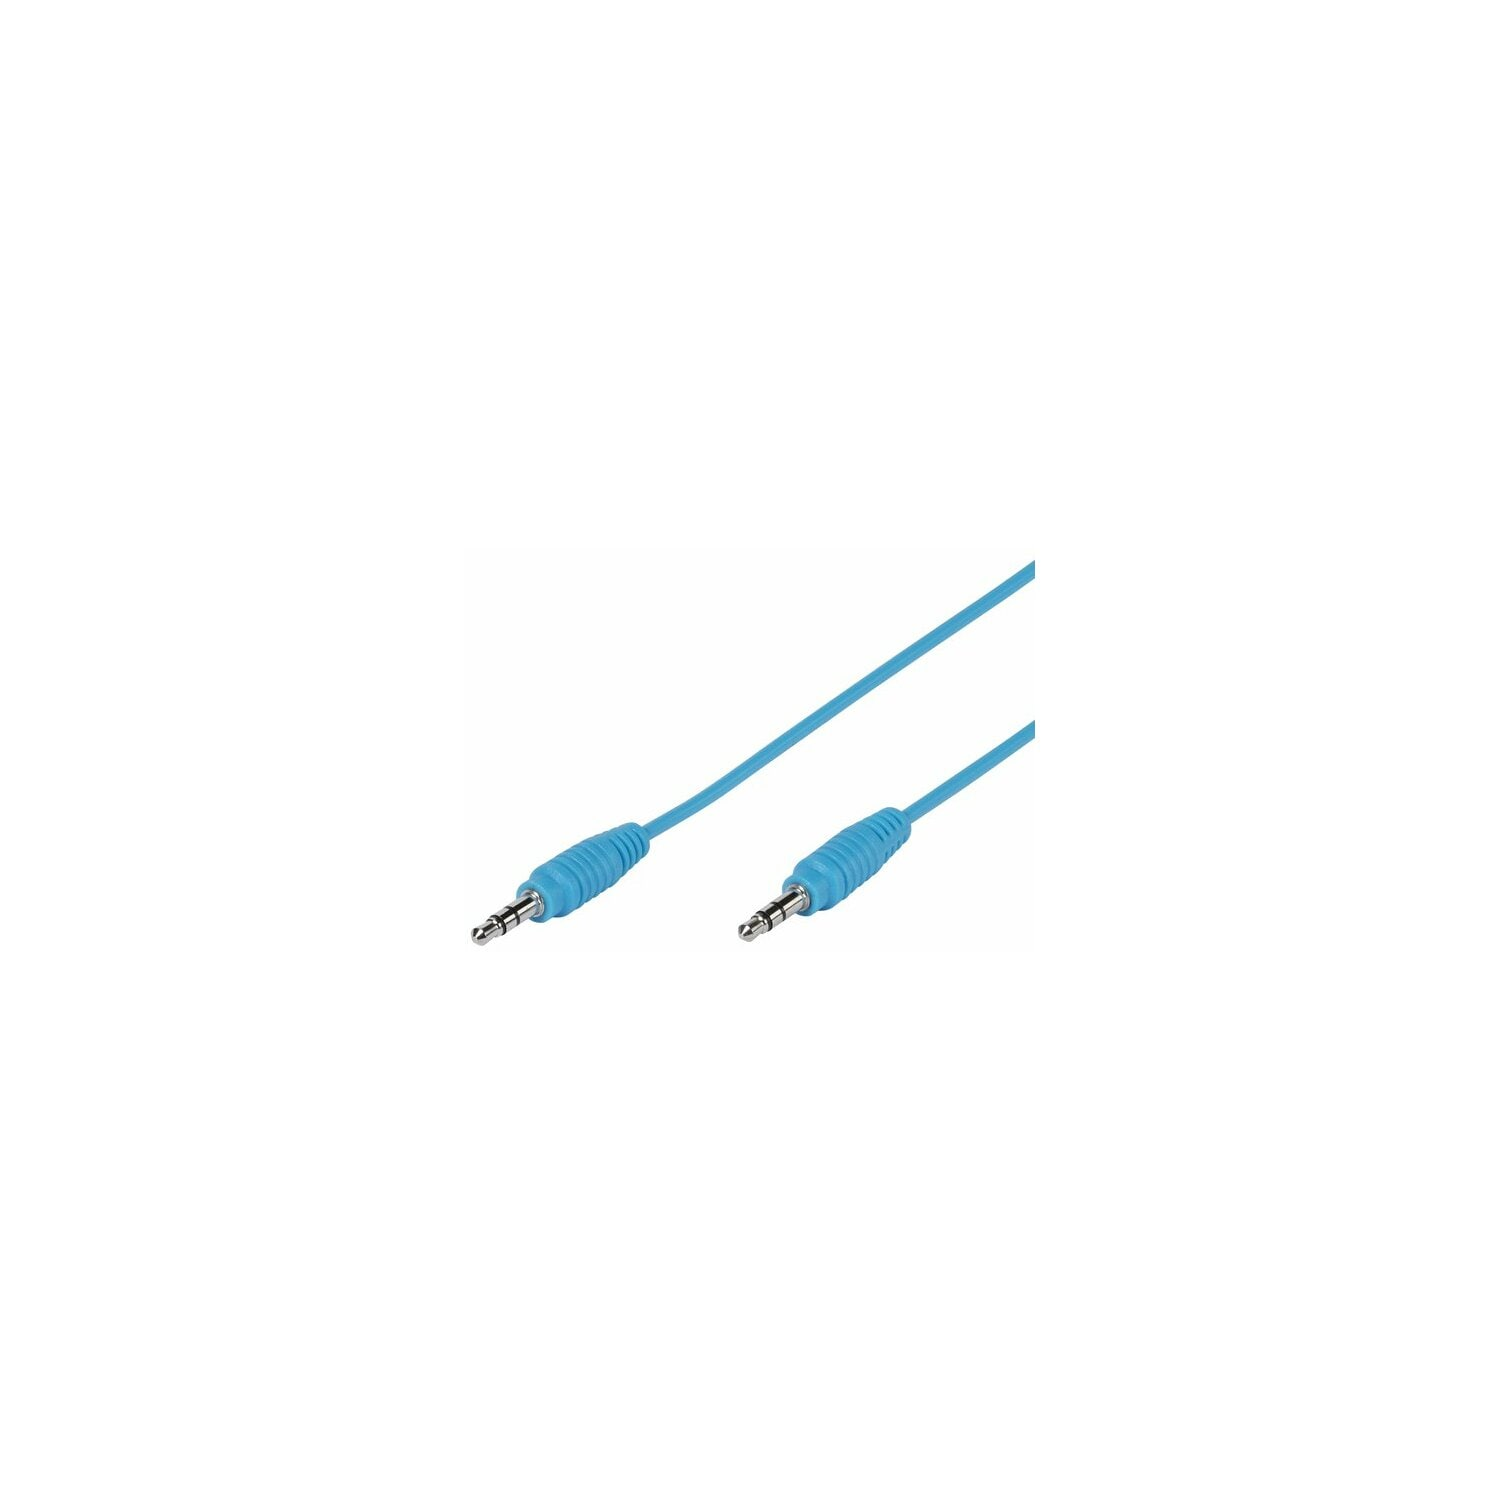 Kabel VIVANCO jack 3.5 mm - jack 3.5 mm 1m Niebieski